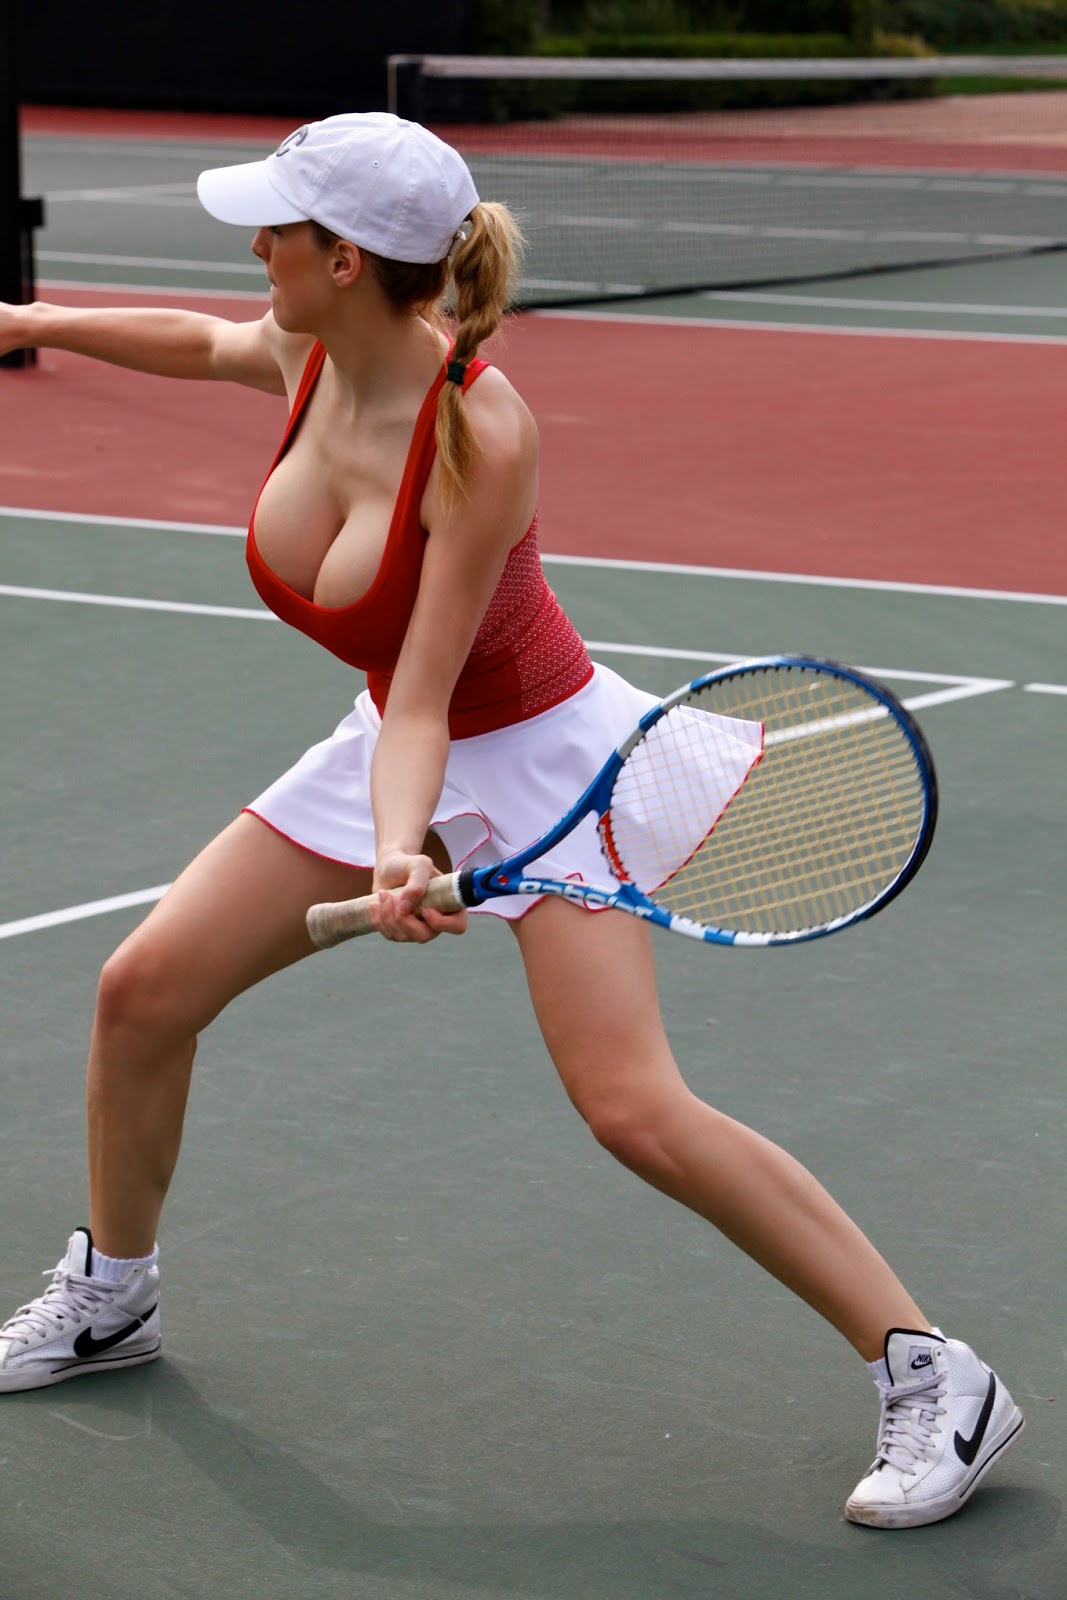 Jordan carver playing hot tennis big boobs cleavage show for Best online photo gallery